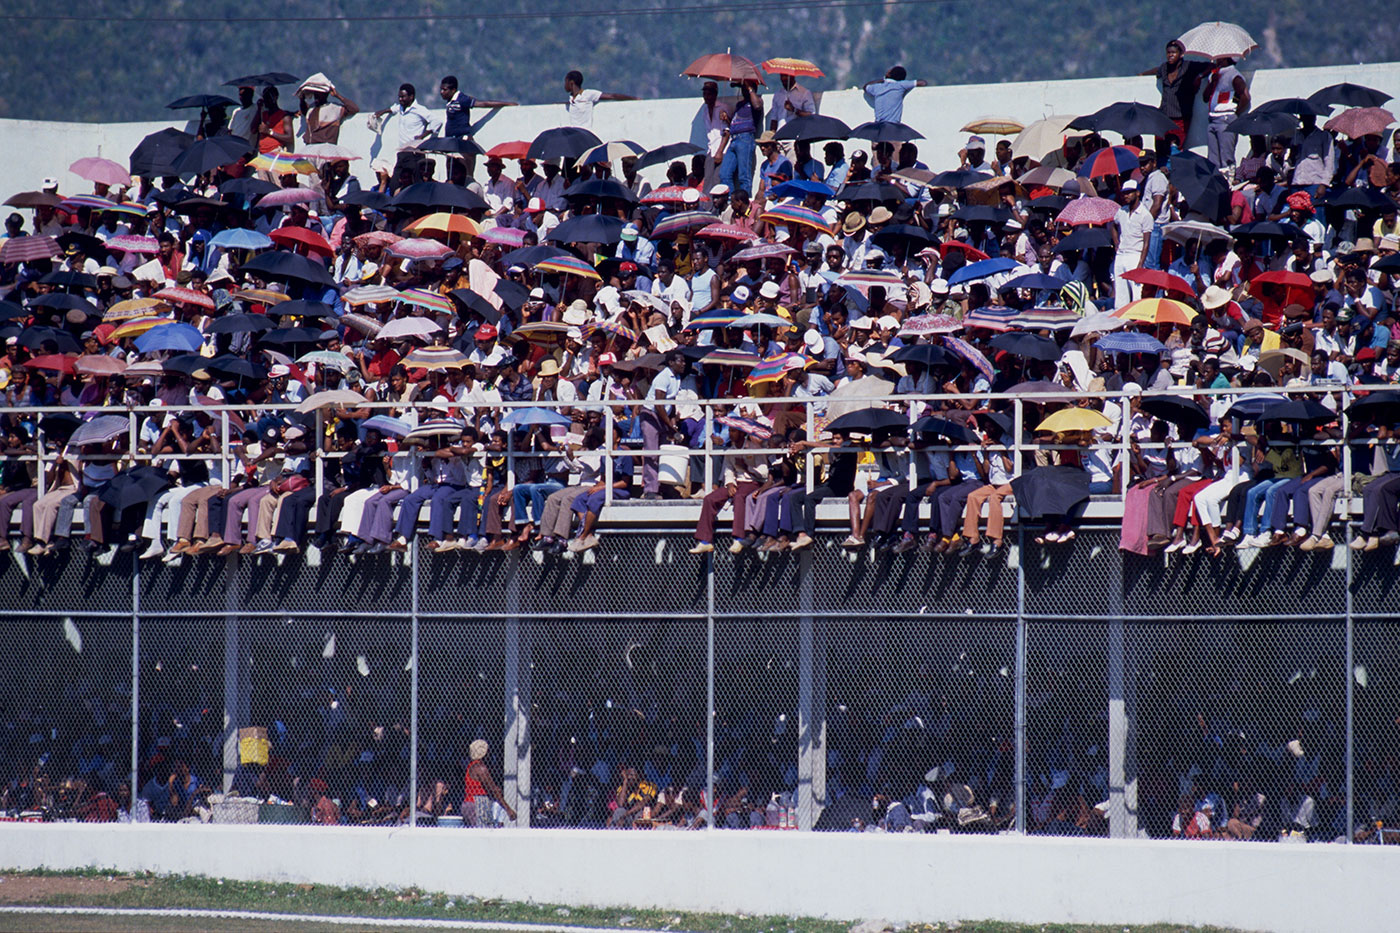 Spectators use umbrellas to shield themselves from the sun